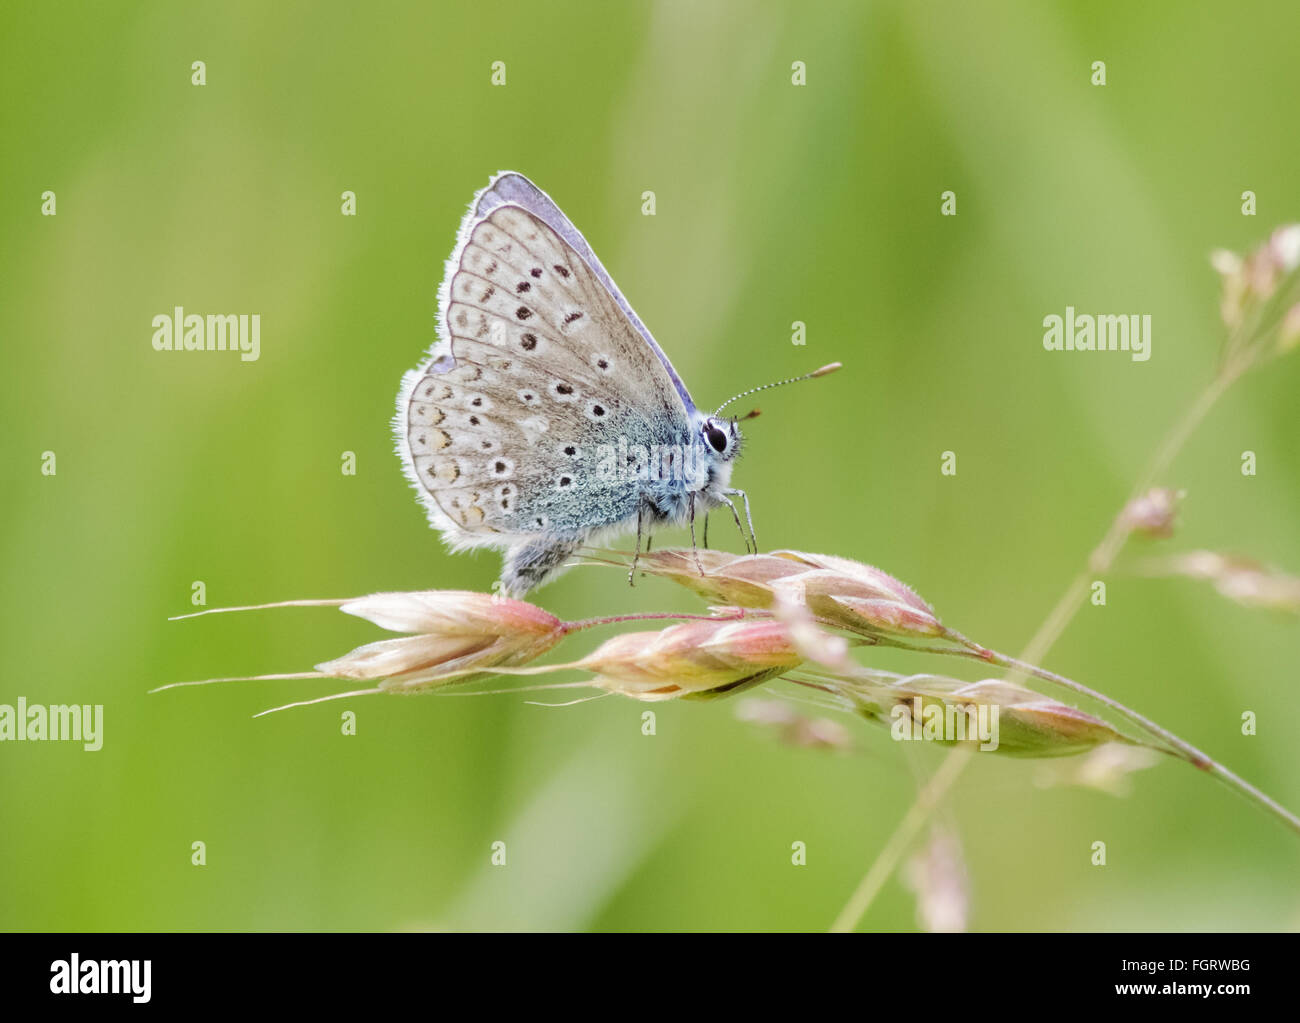 Male Common Blue butterfly (Polyommatus icarus) perched on a grass stem. - Stock Image